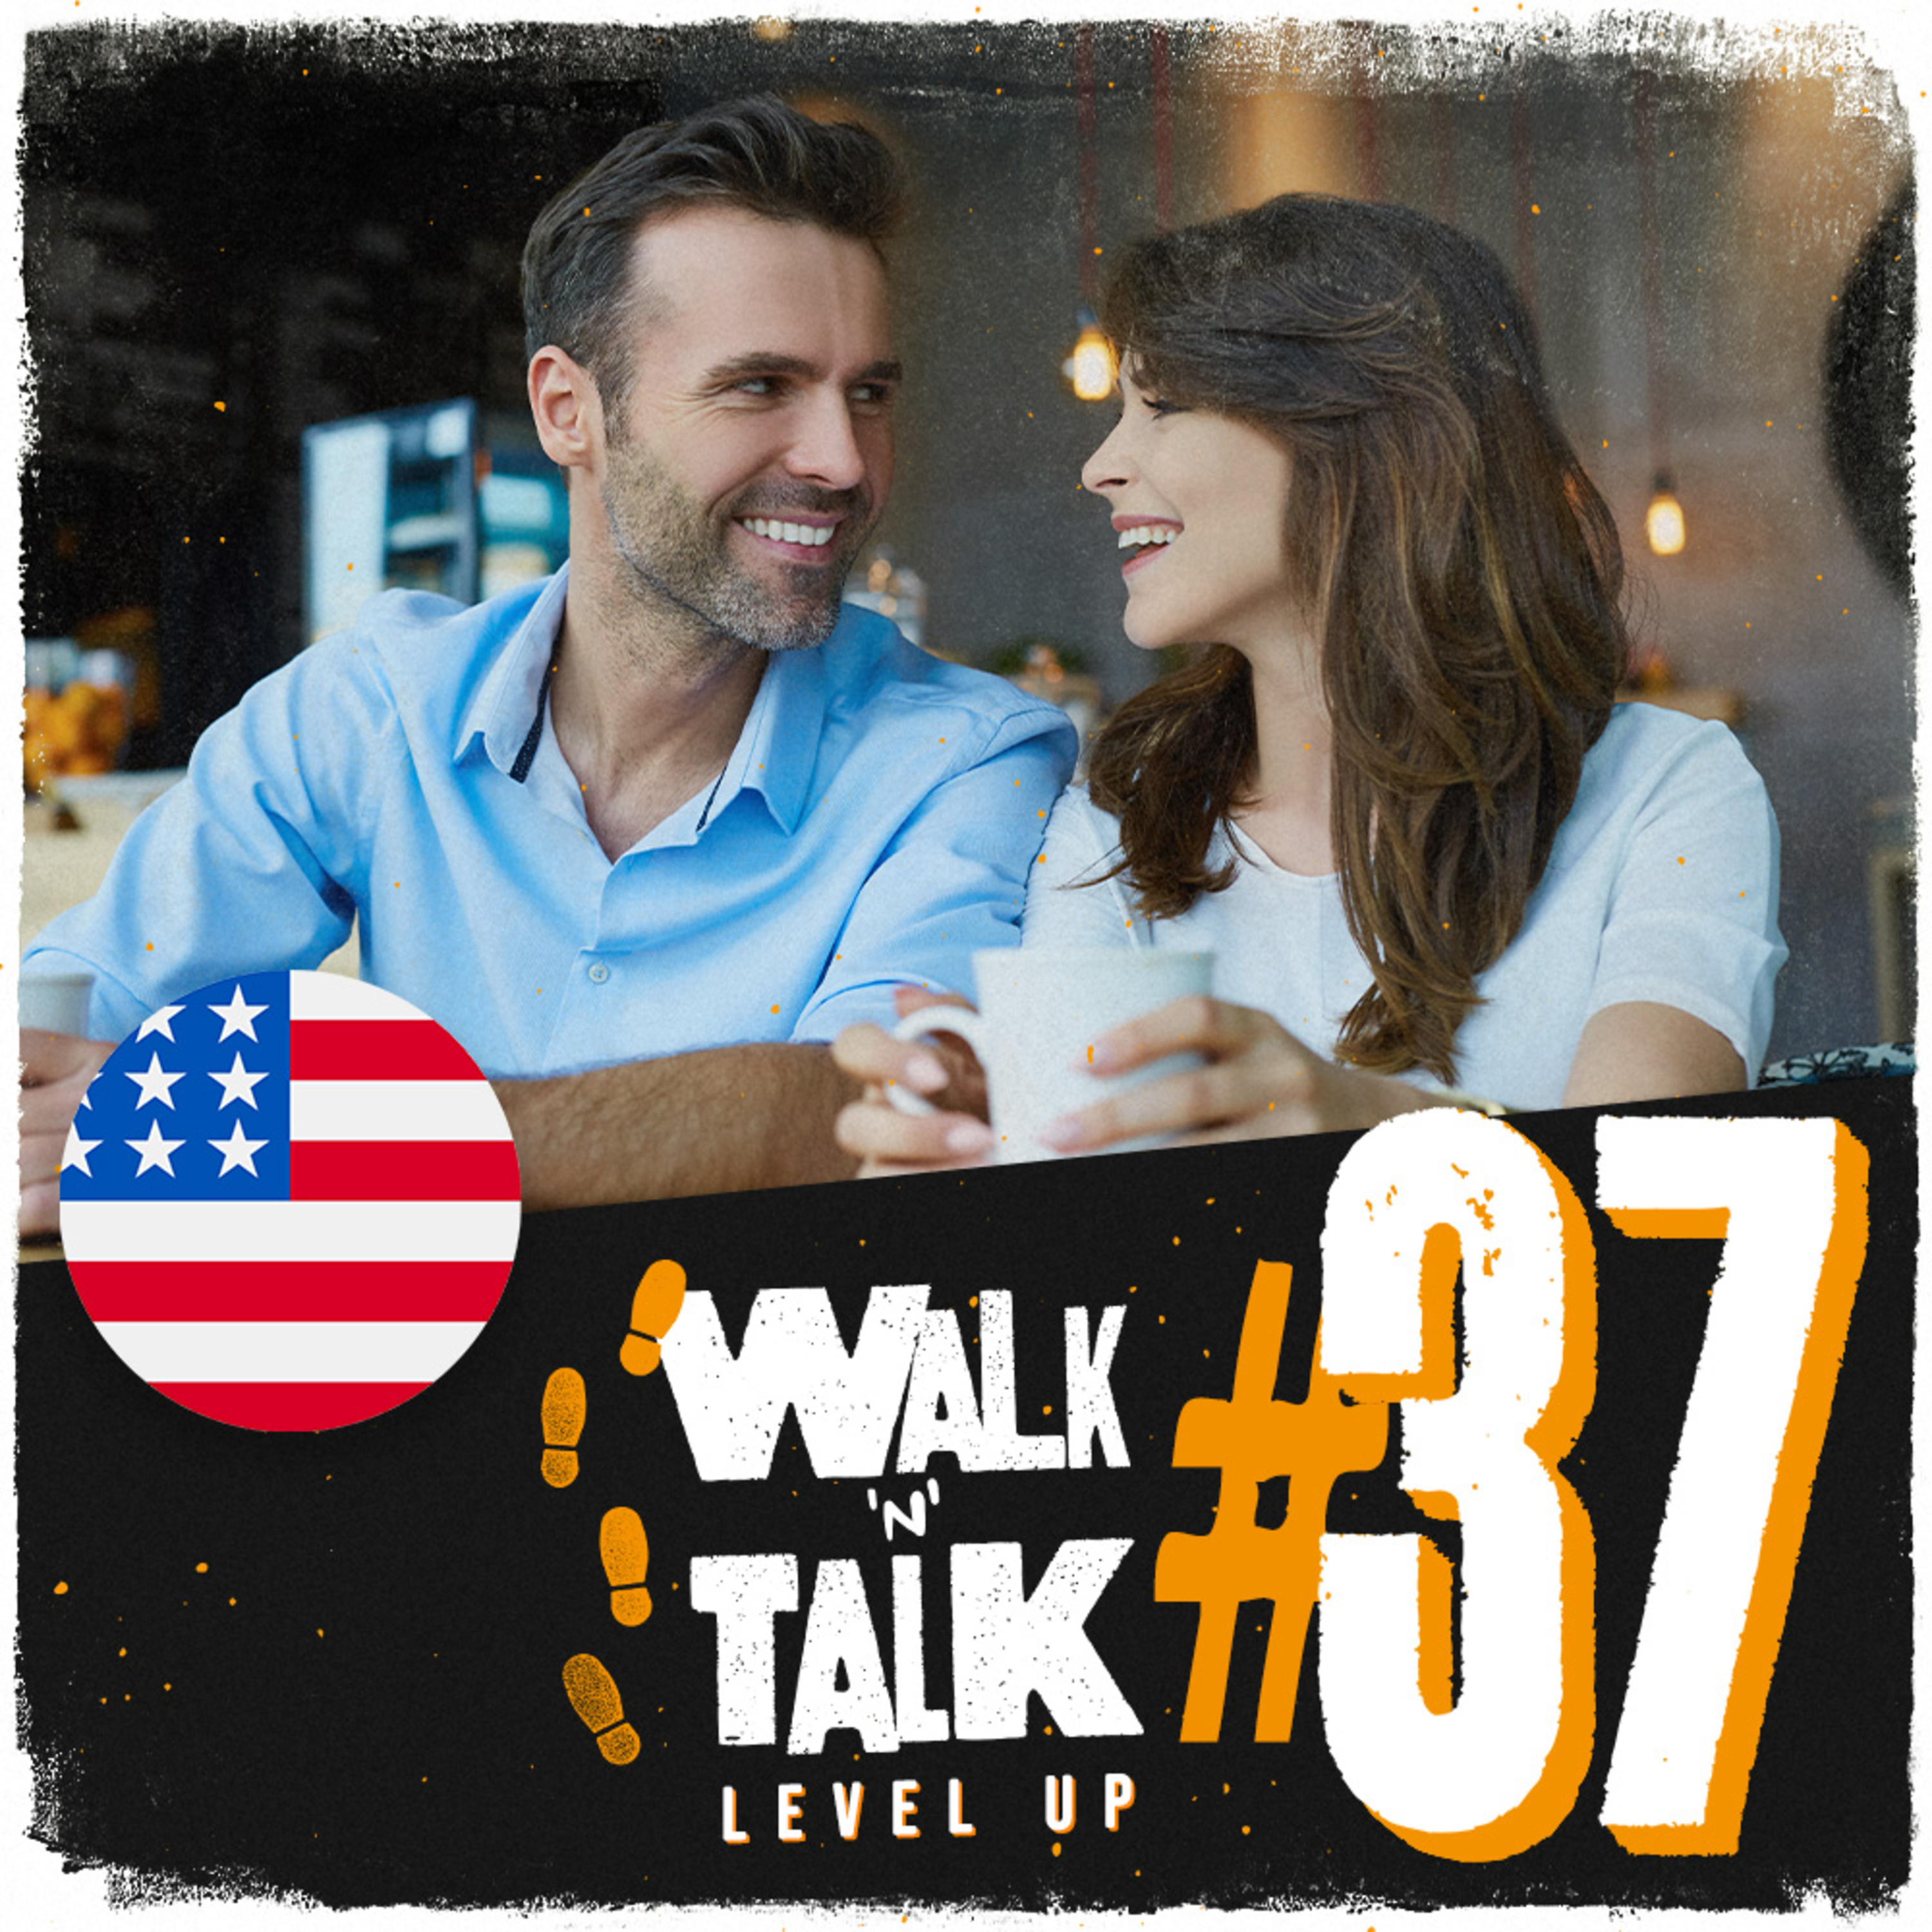 Walk 'n' Talk Level Up #37 - You light up the room